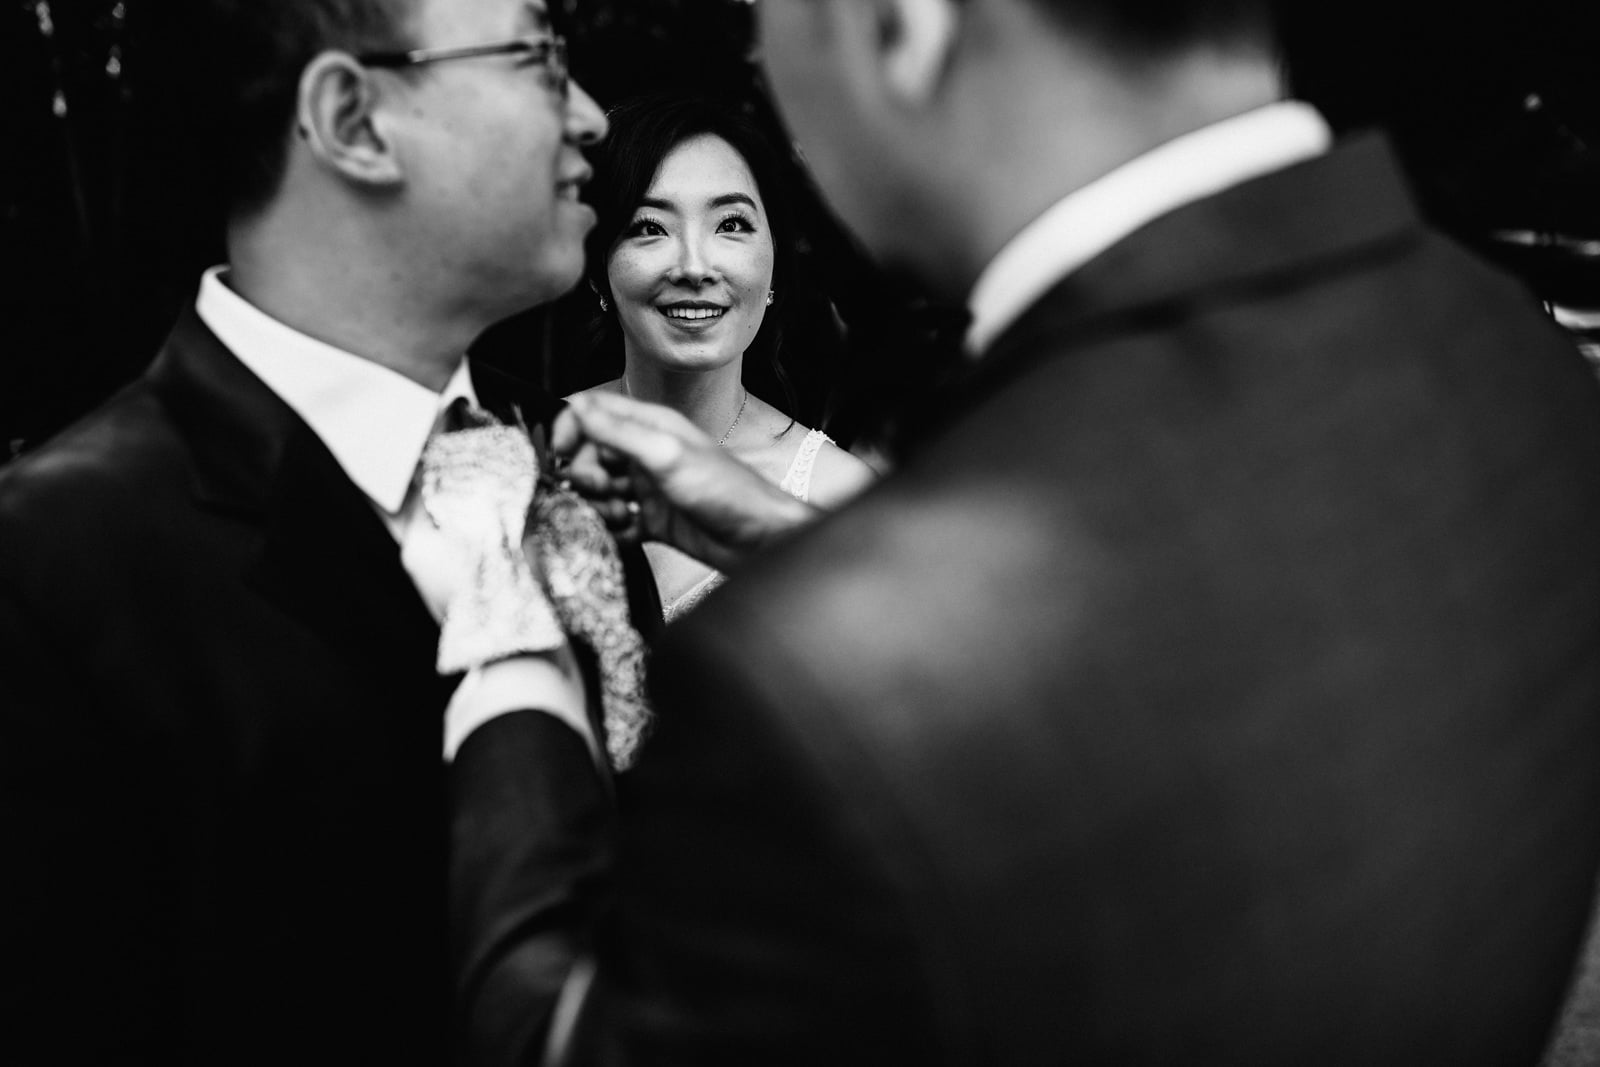 Bride watching her husband to be having his tie fixed